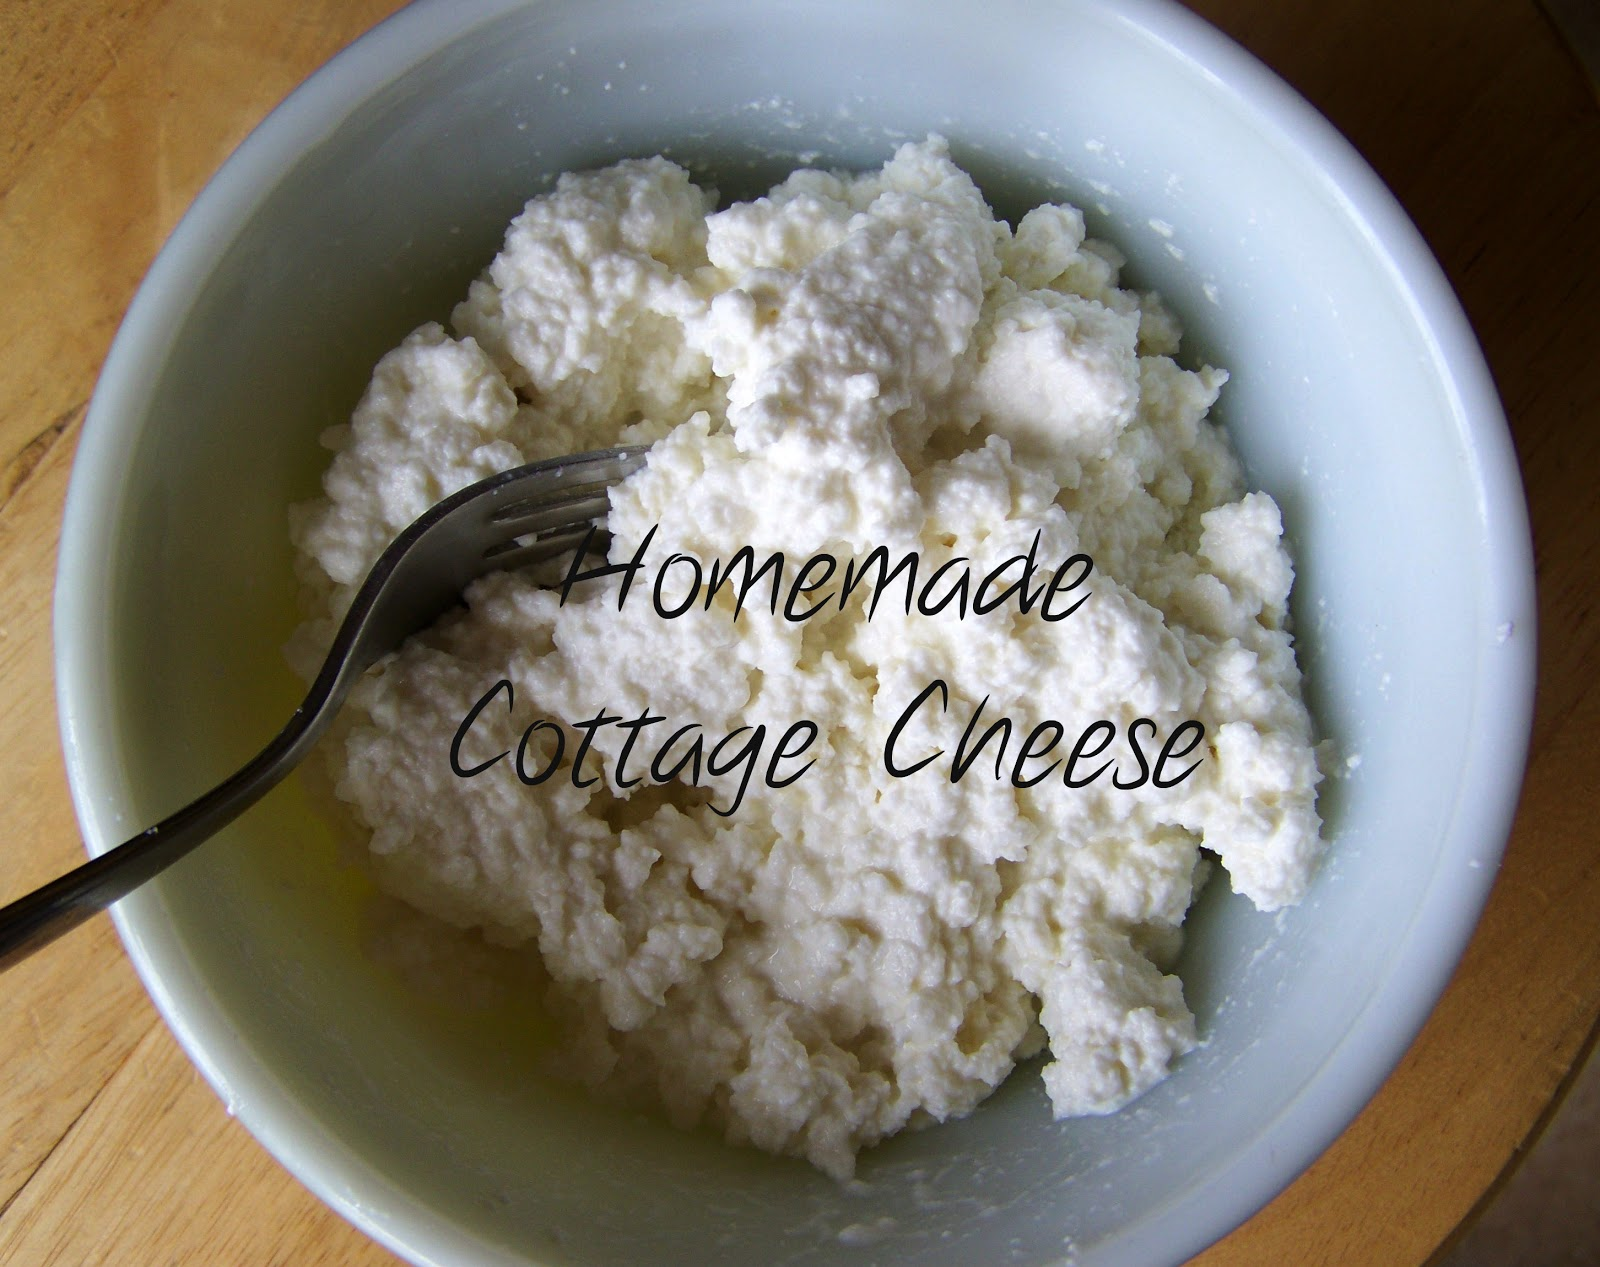 ... Juice: Easy and Delicious Homemade Cottage Cheese (without Rennet